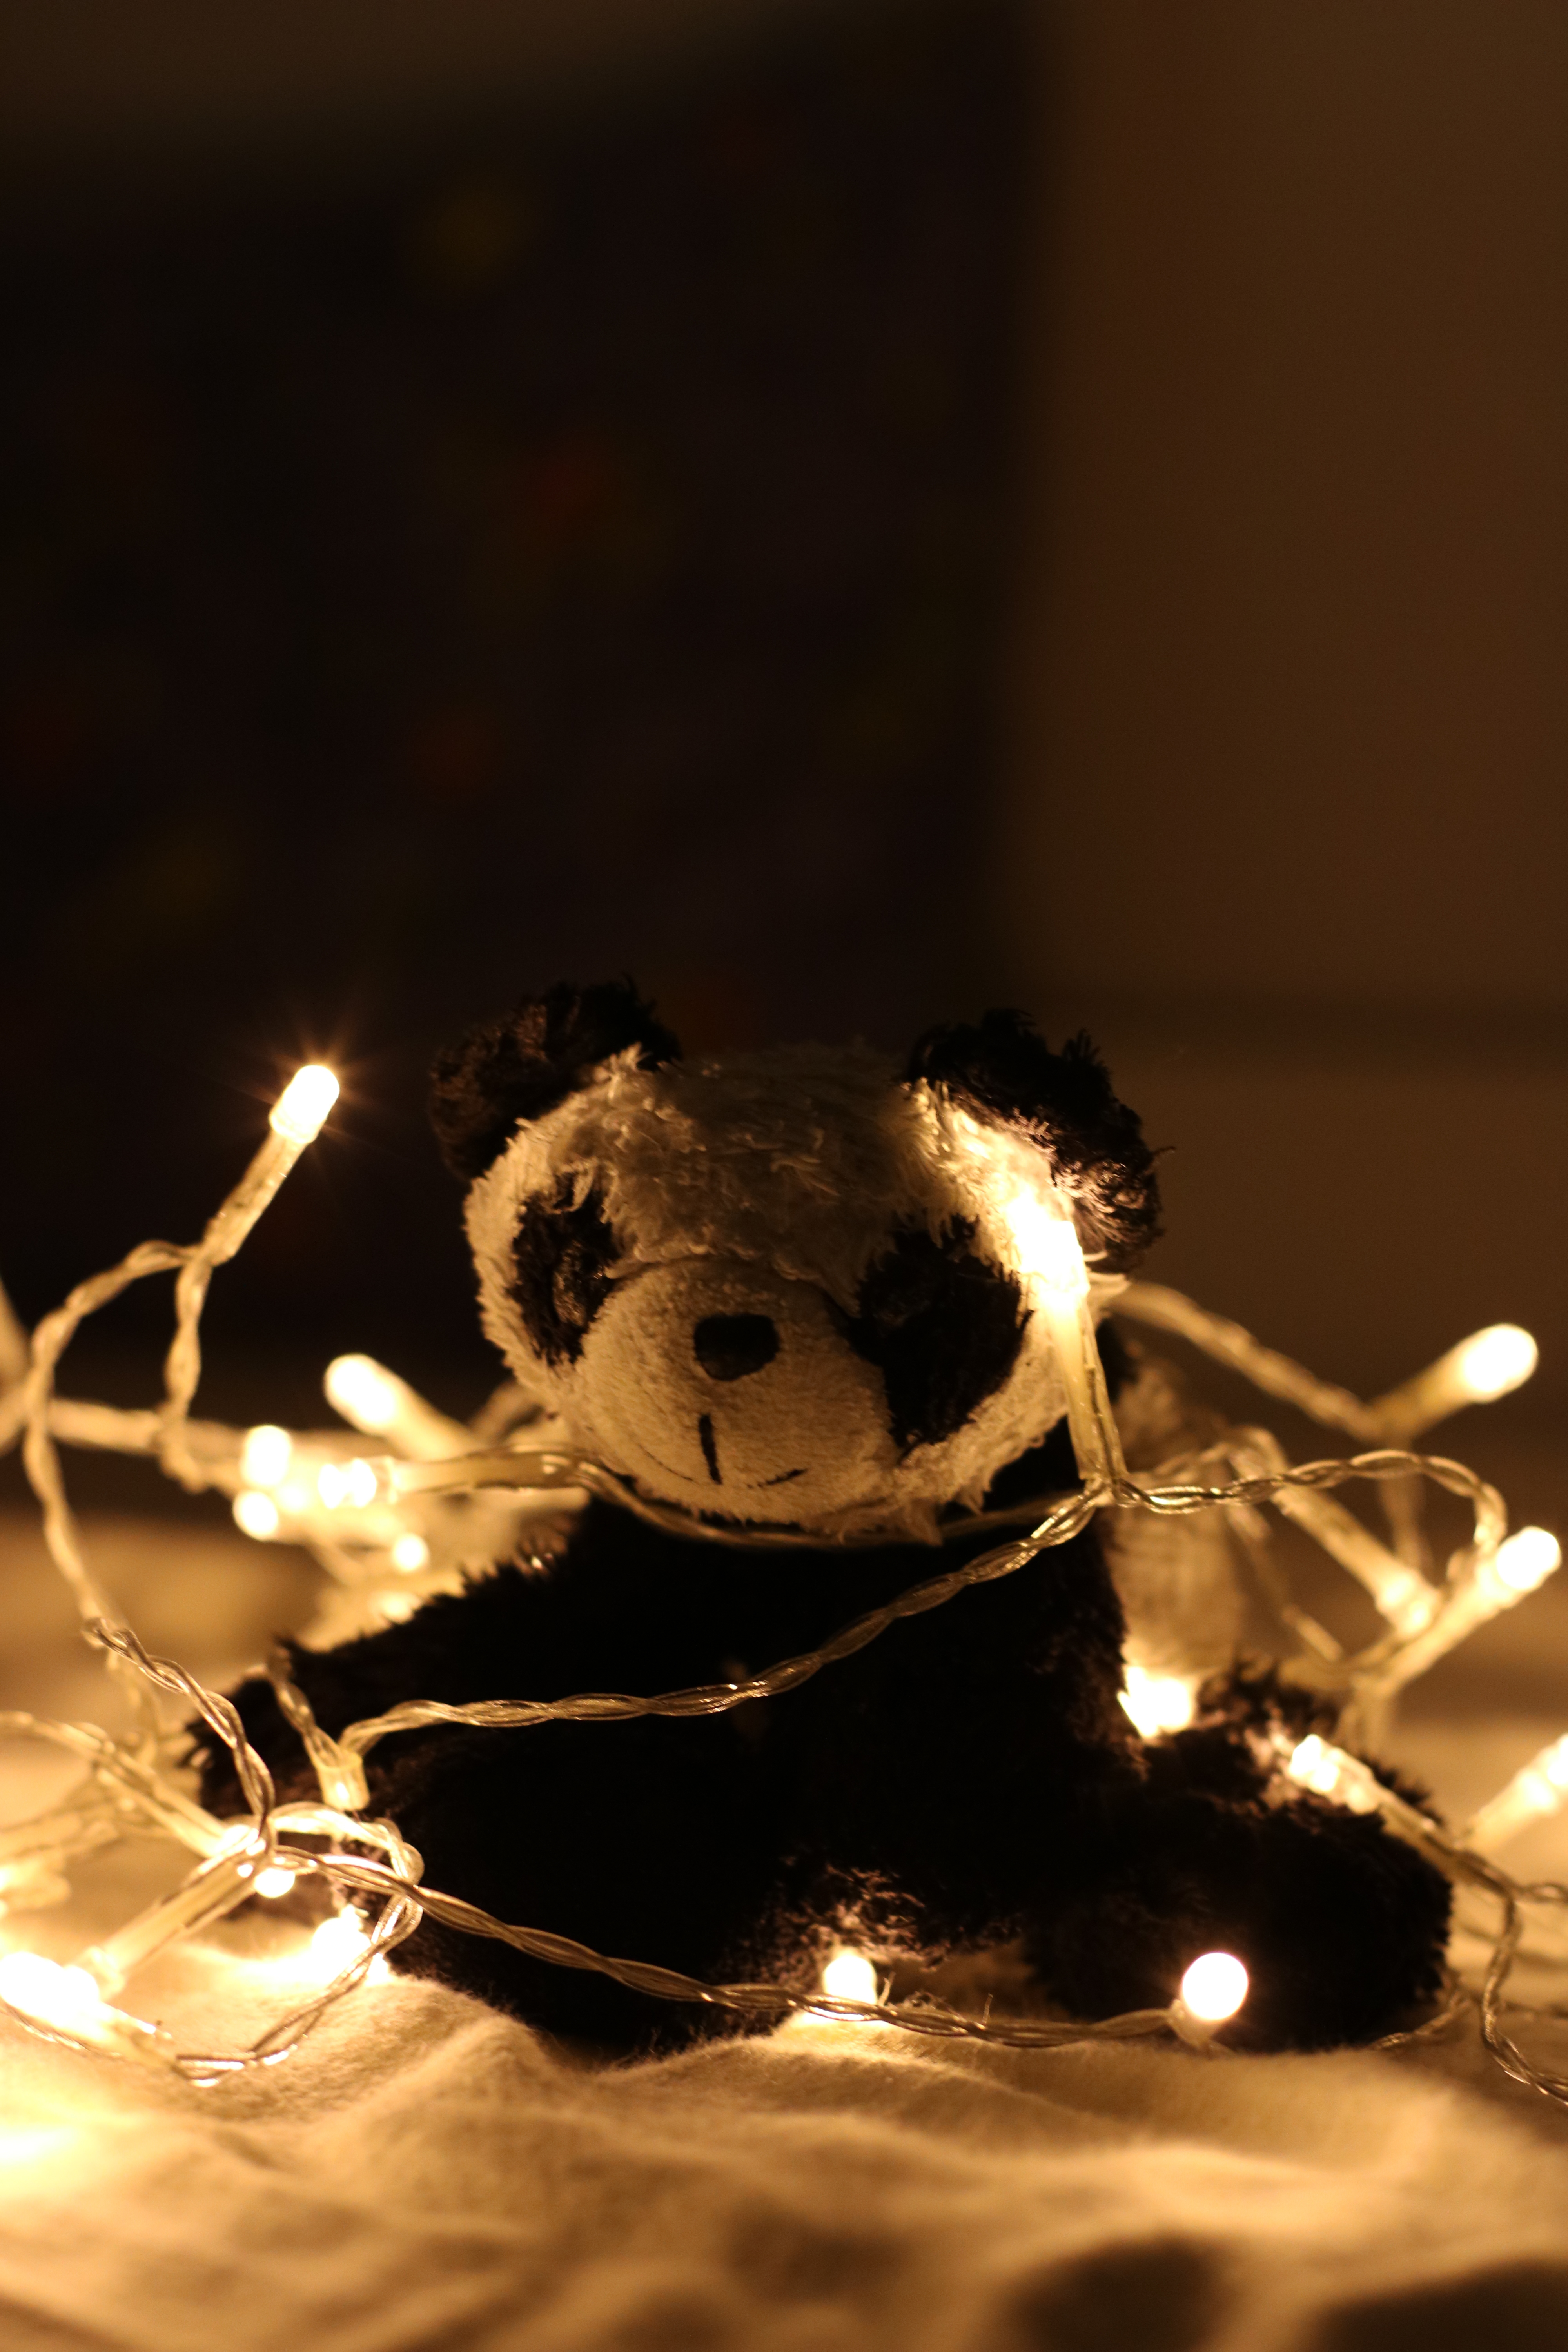 Panda Plush Toy Surrounded by Beige Light Strings